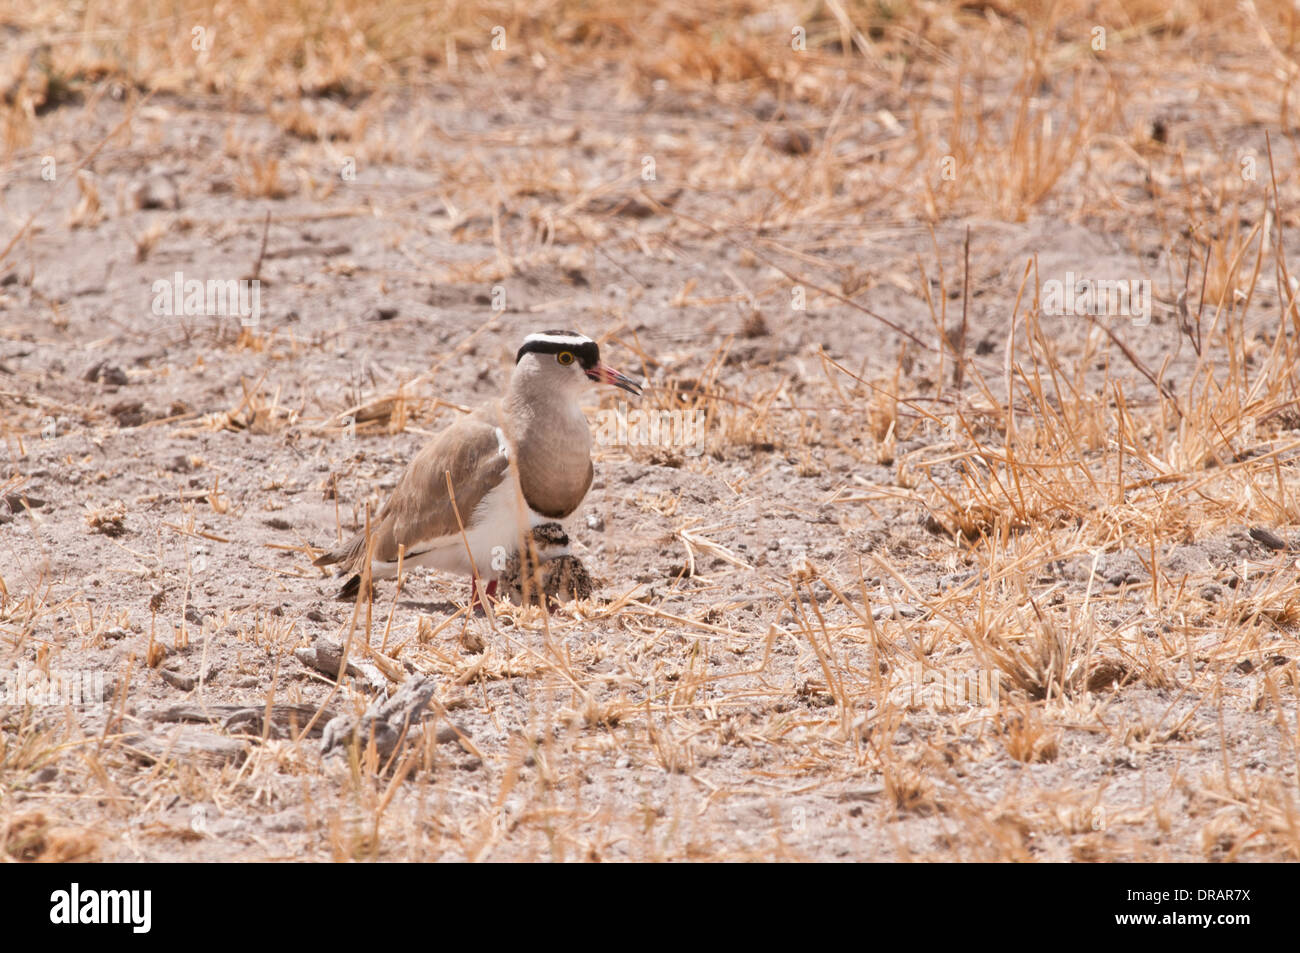 Crowned Plover with tiny chick on dried out grassland in Amboseli National Park Kenya East Africa - Stock Image